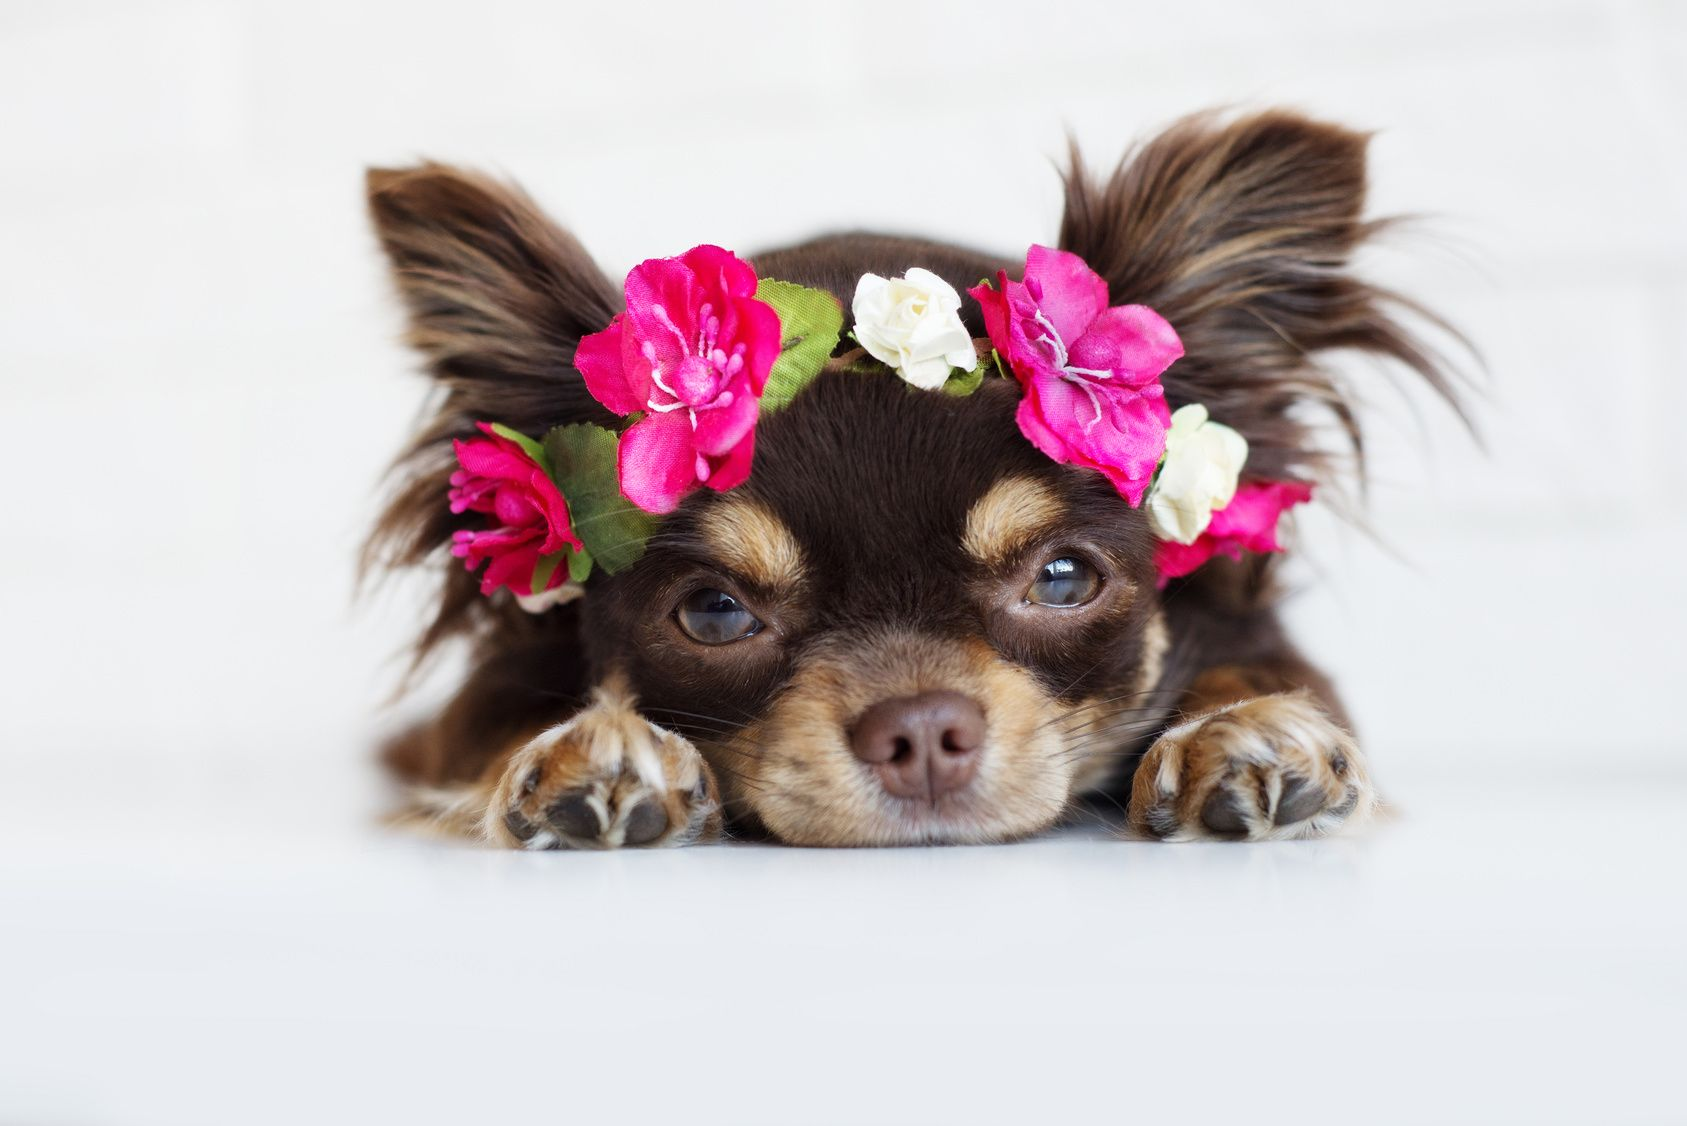 funny chihuahua dog in a flower crown